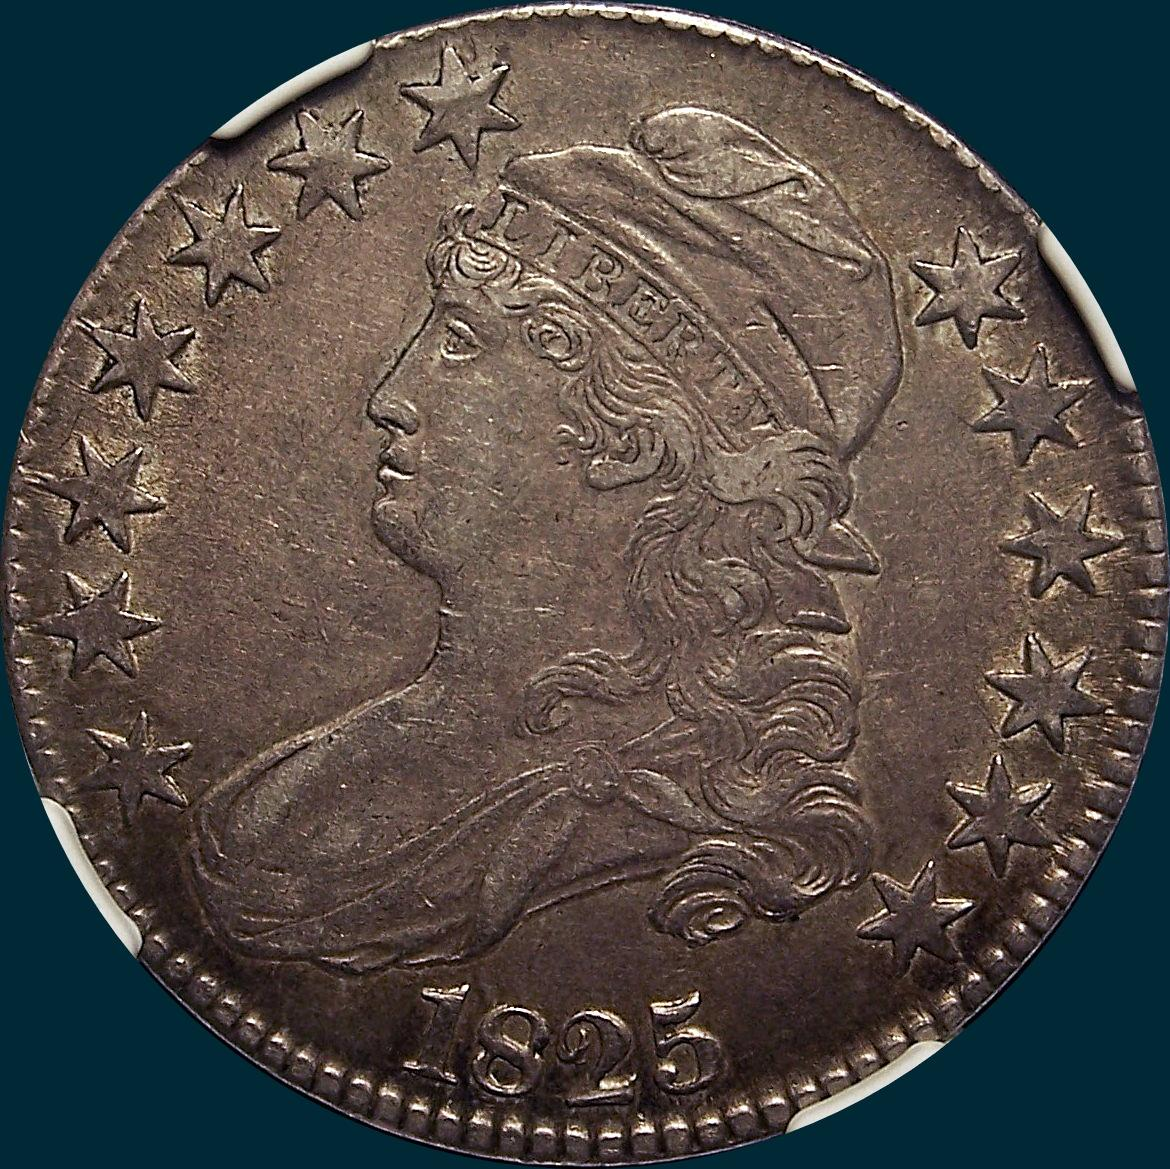 1825, O-112 capped bust half dollar